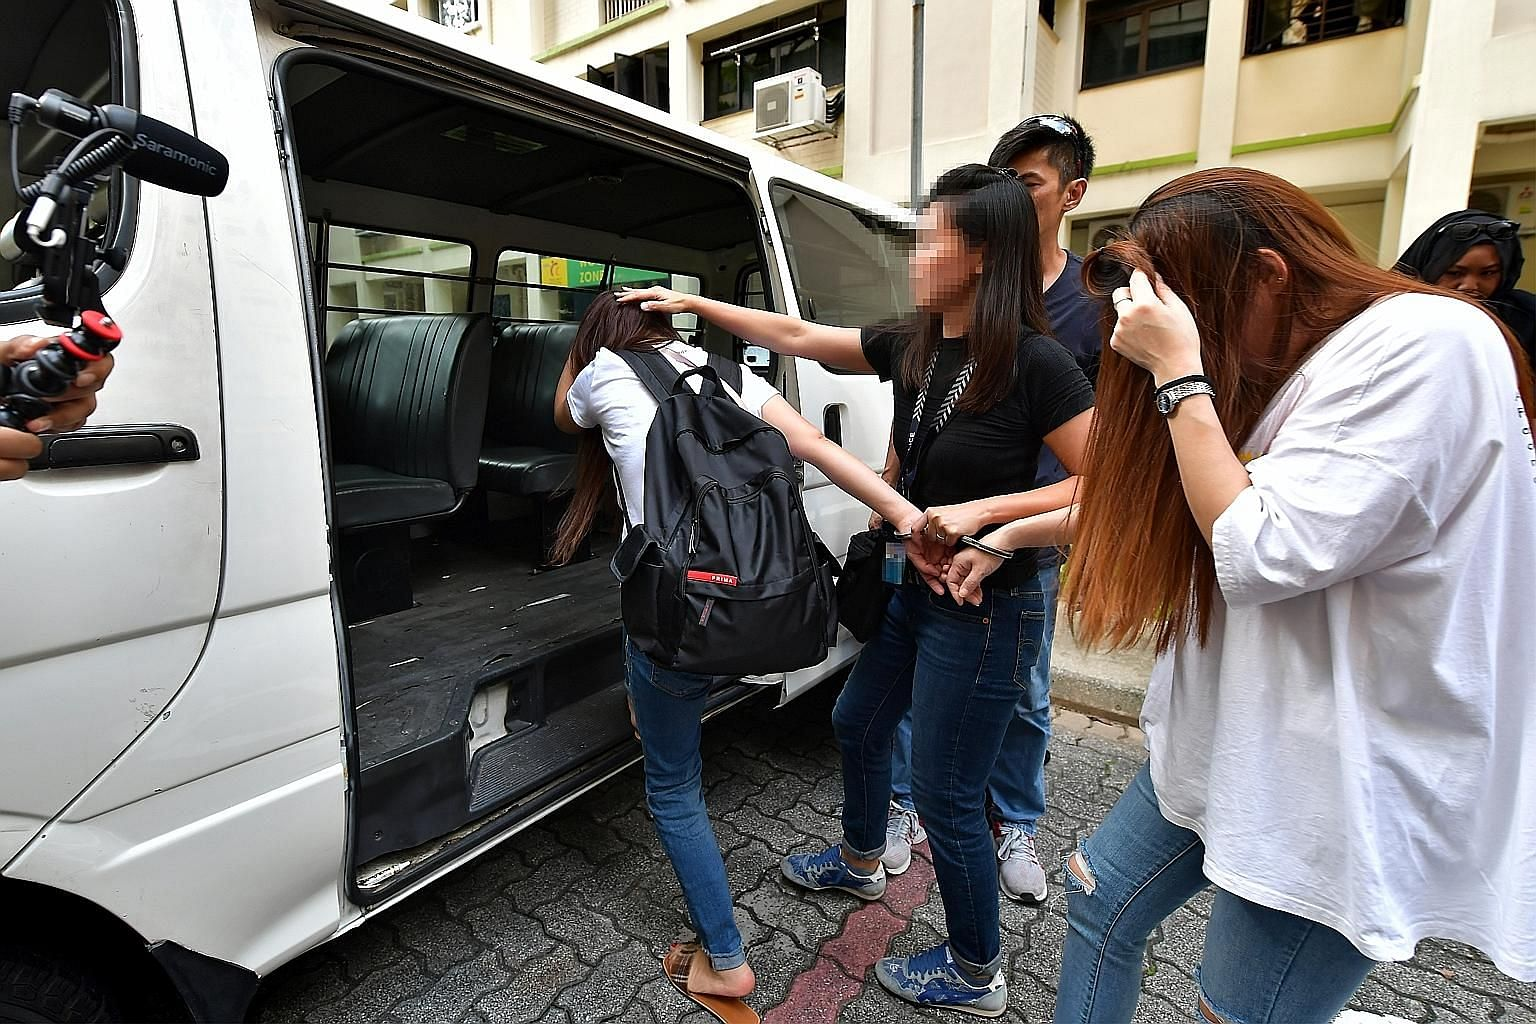 Two women being led away by the police on Oct 25 for suspected involvement in vice-related activities in an HDB flat in Woodlands. Amendments to the Women's Charter were passed in Parliament this month, further empowering the authorities to act again